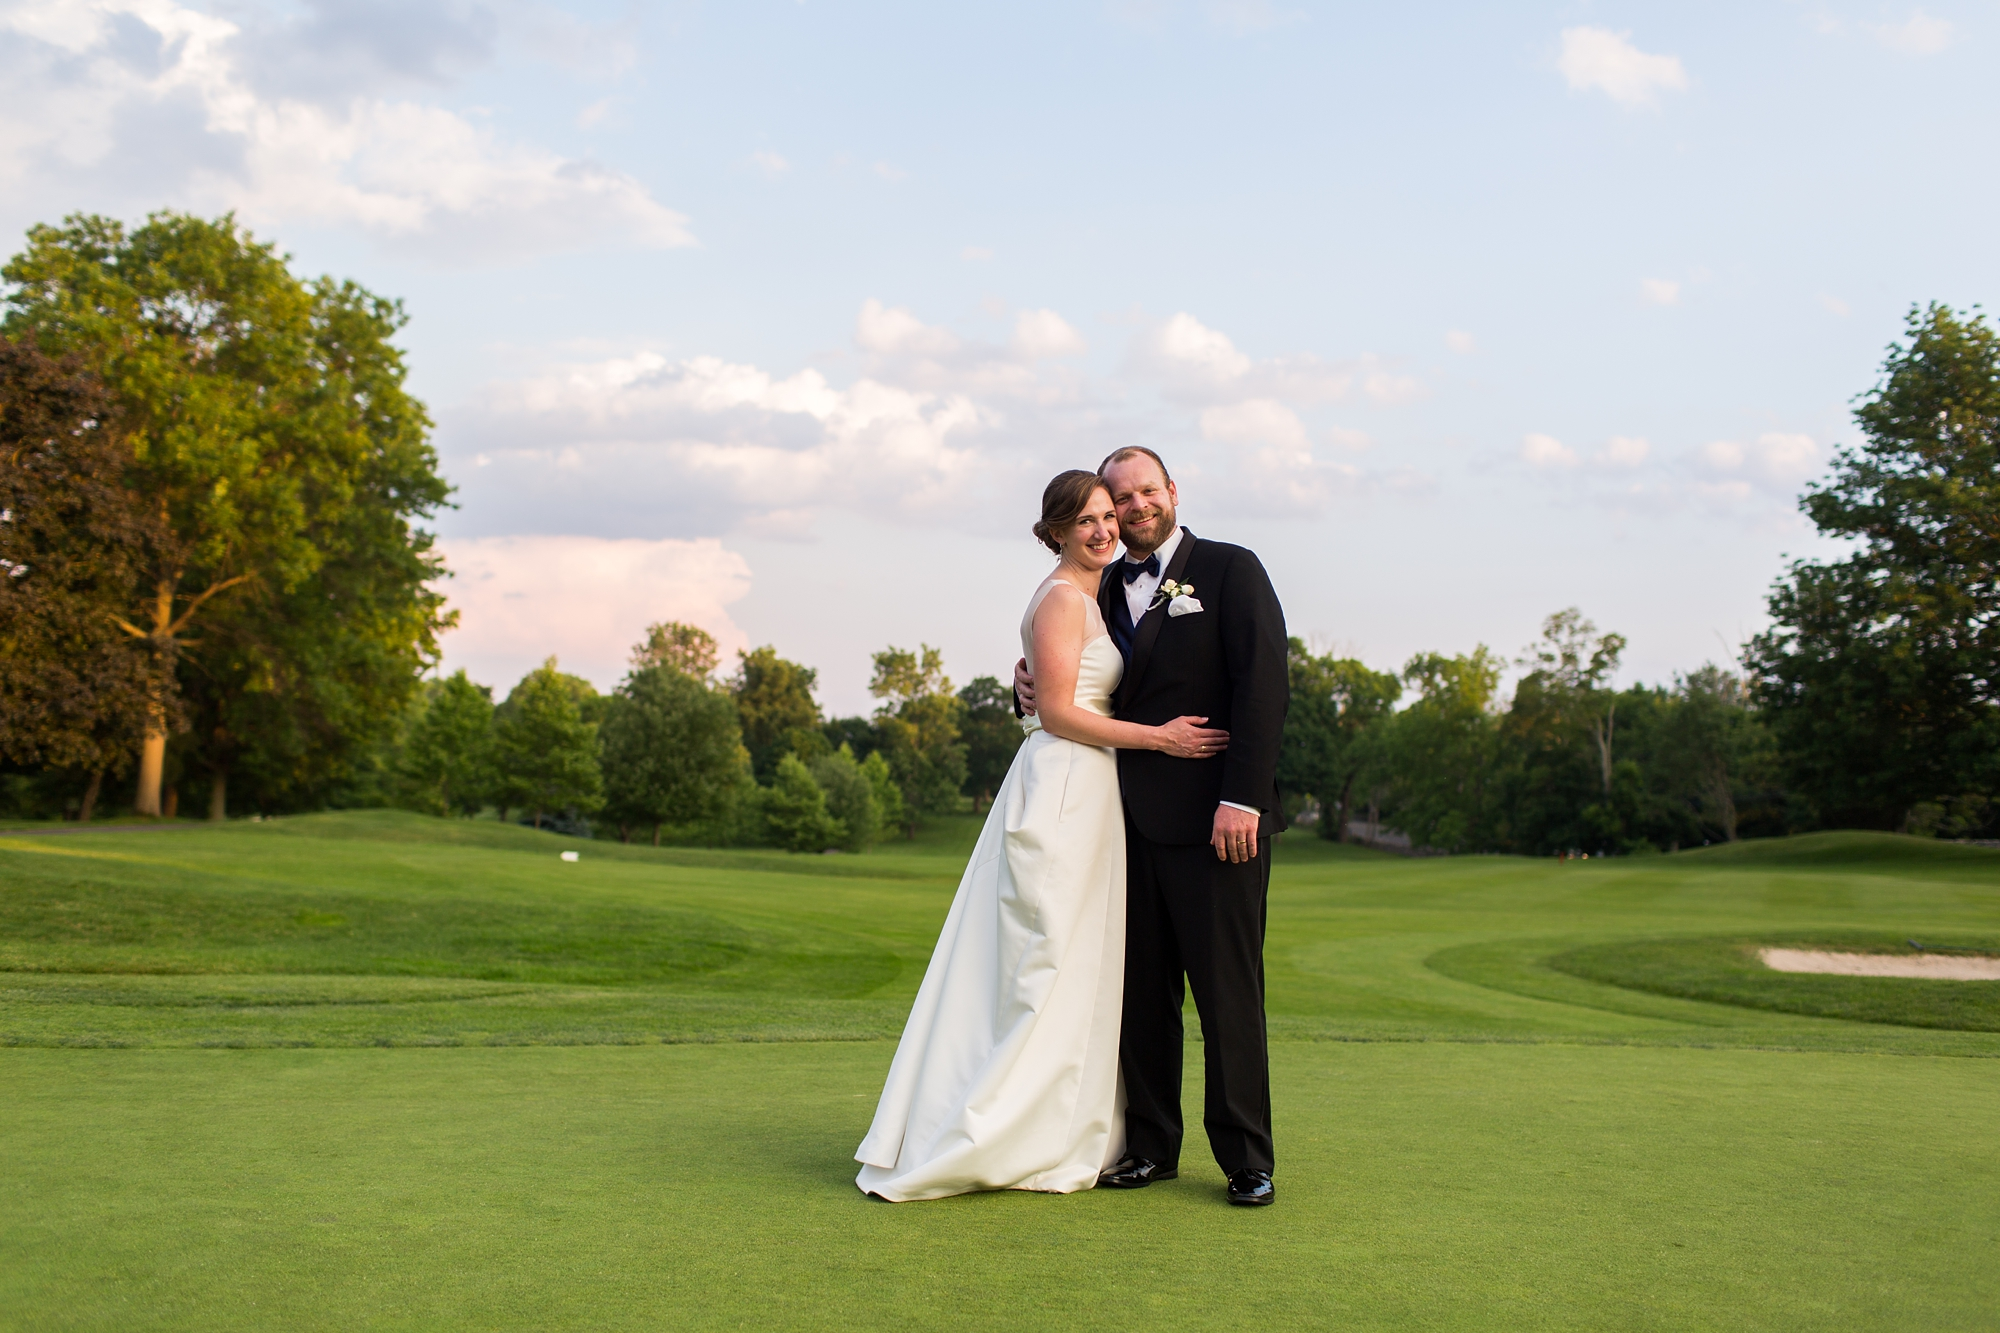 622Allegra_Anderson_CT_Wedding_Photographer_Stamford_Sterling_Farms_Golf_Club_2016